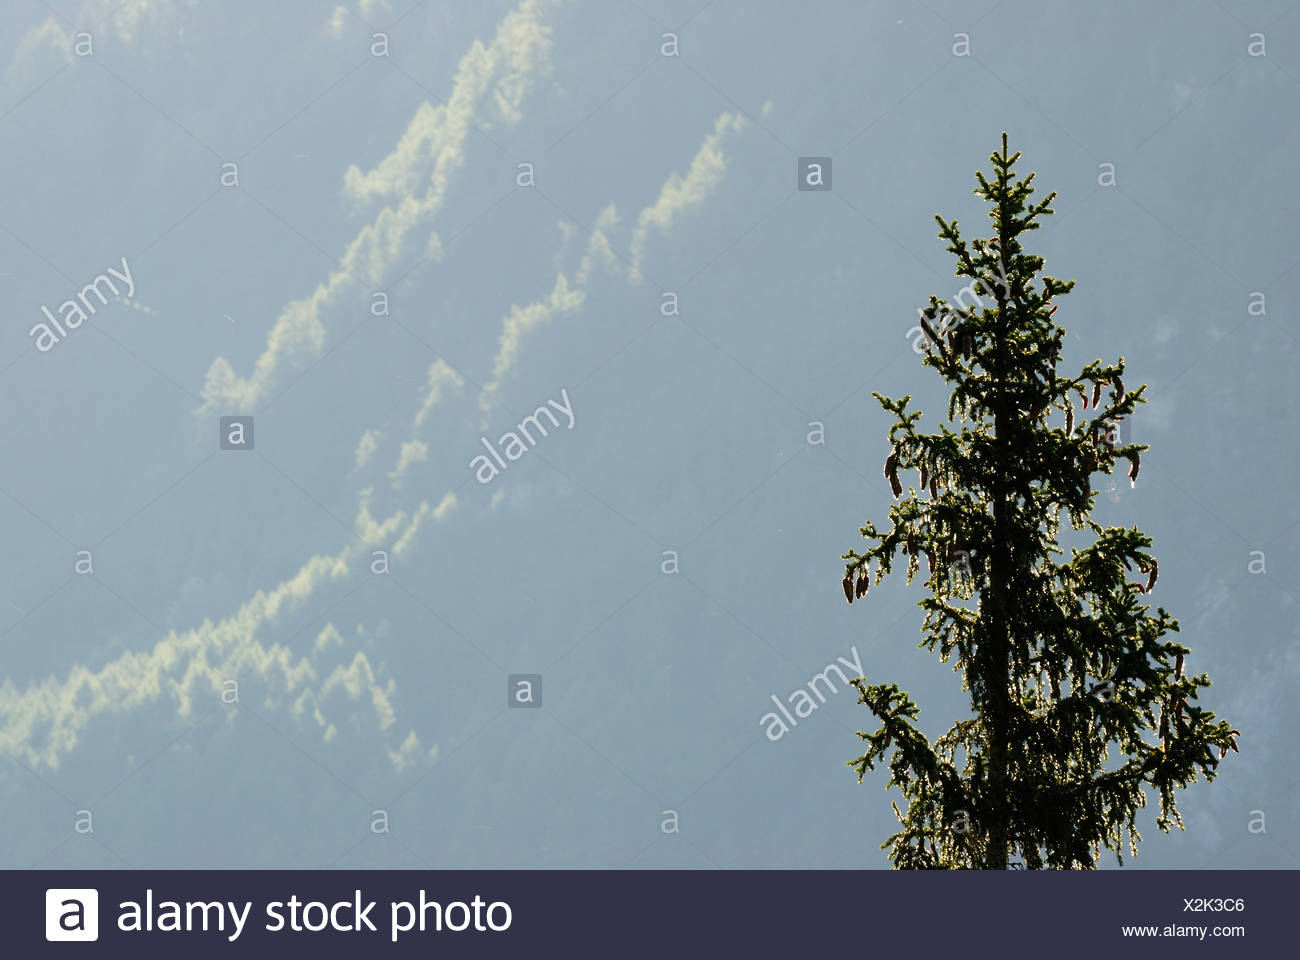 Europe, Austria, Coniferous tree, close-up - Stock Image